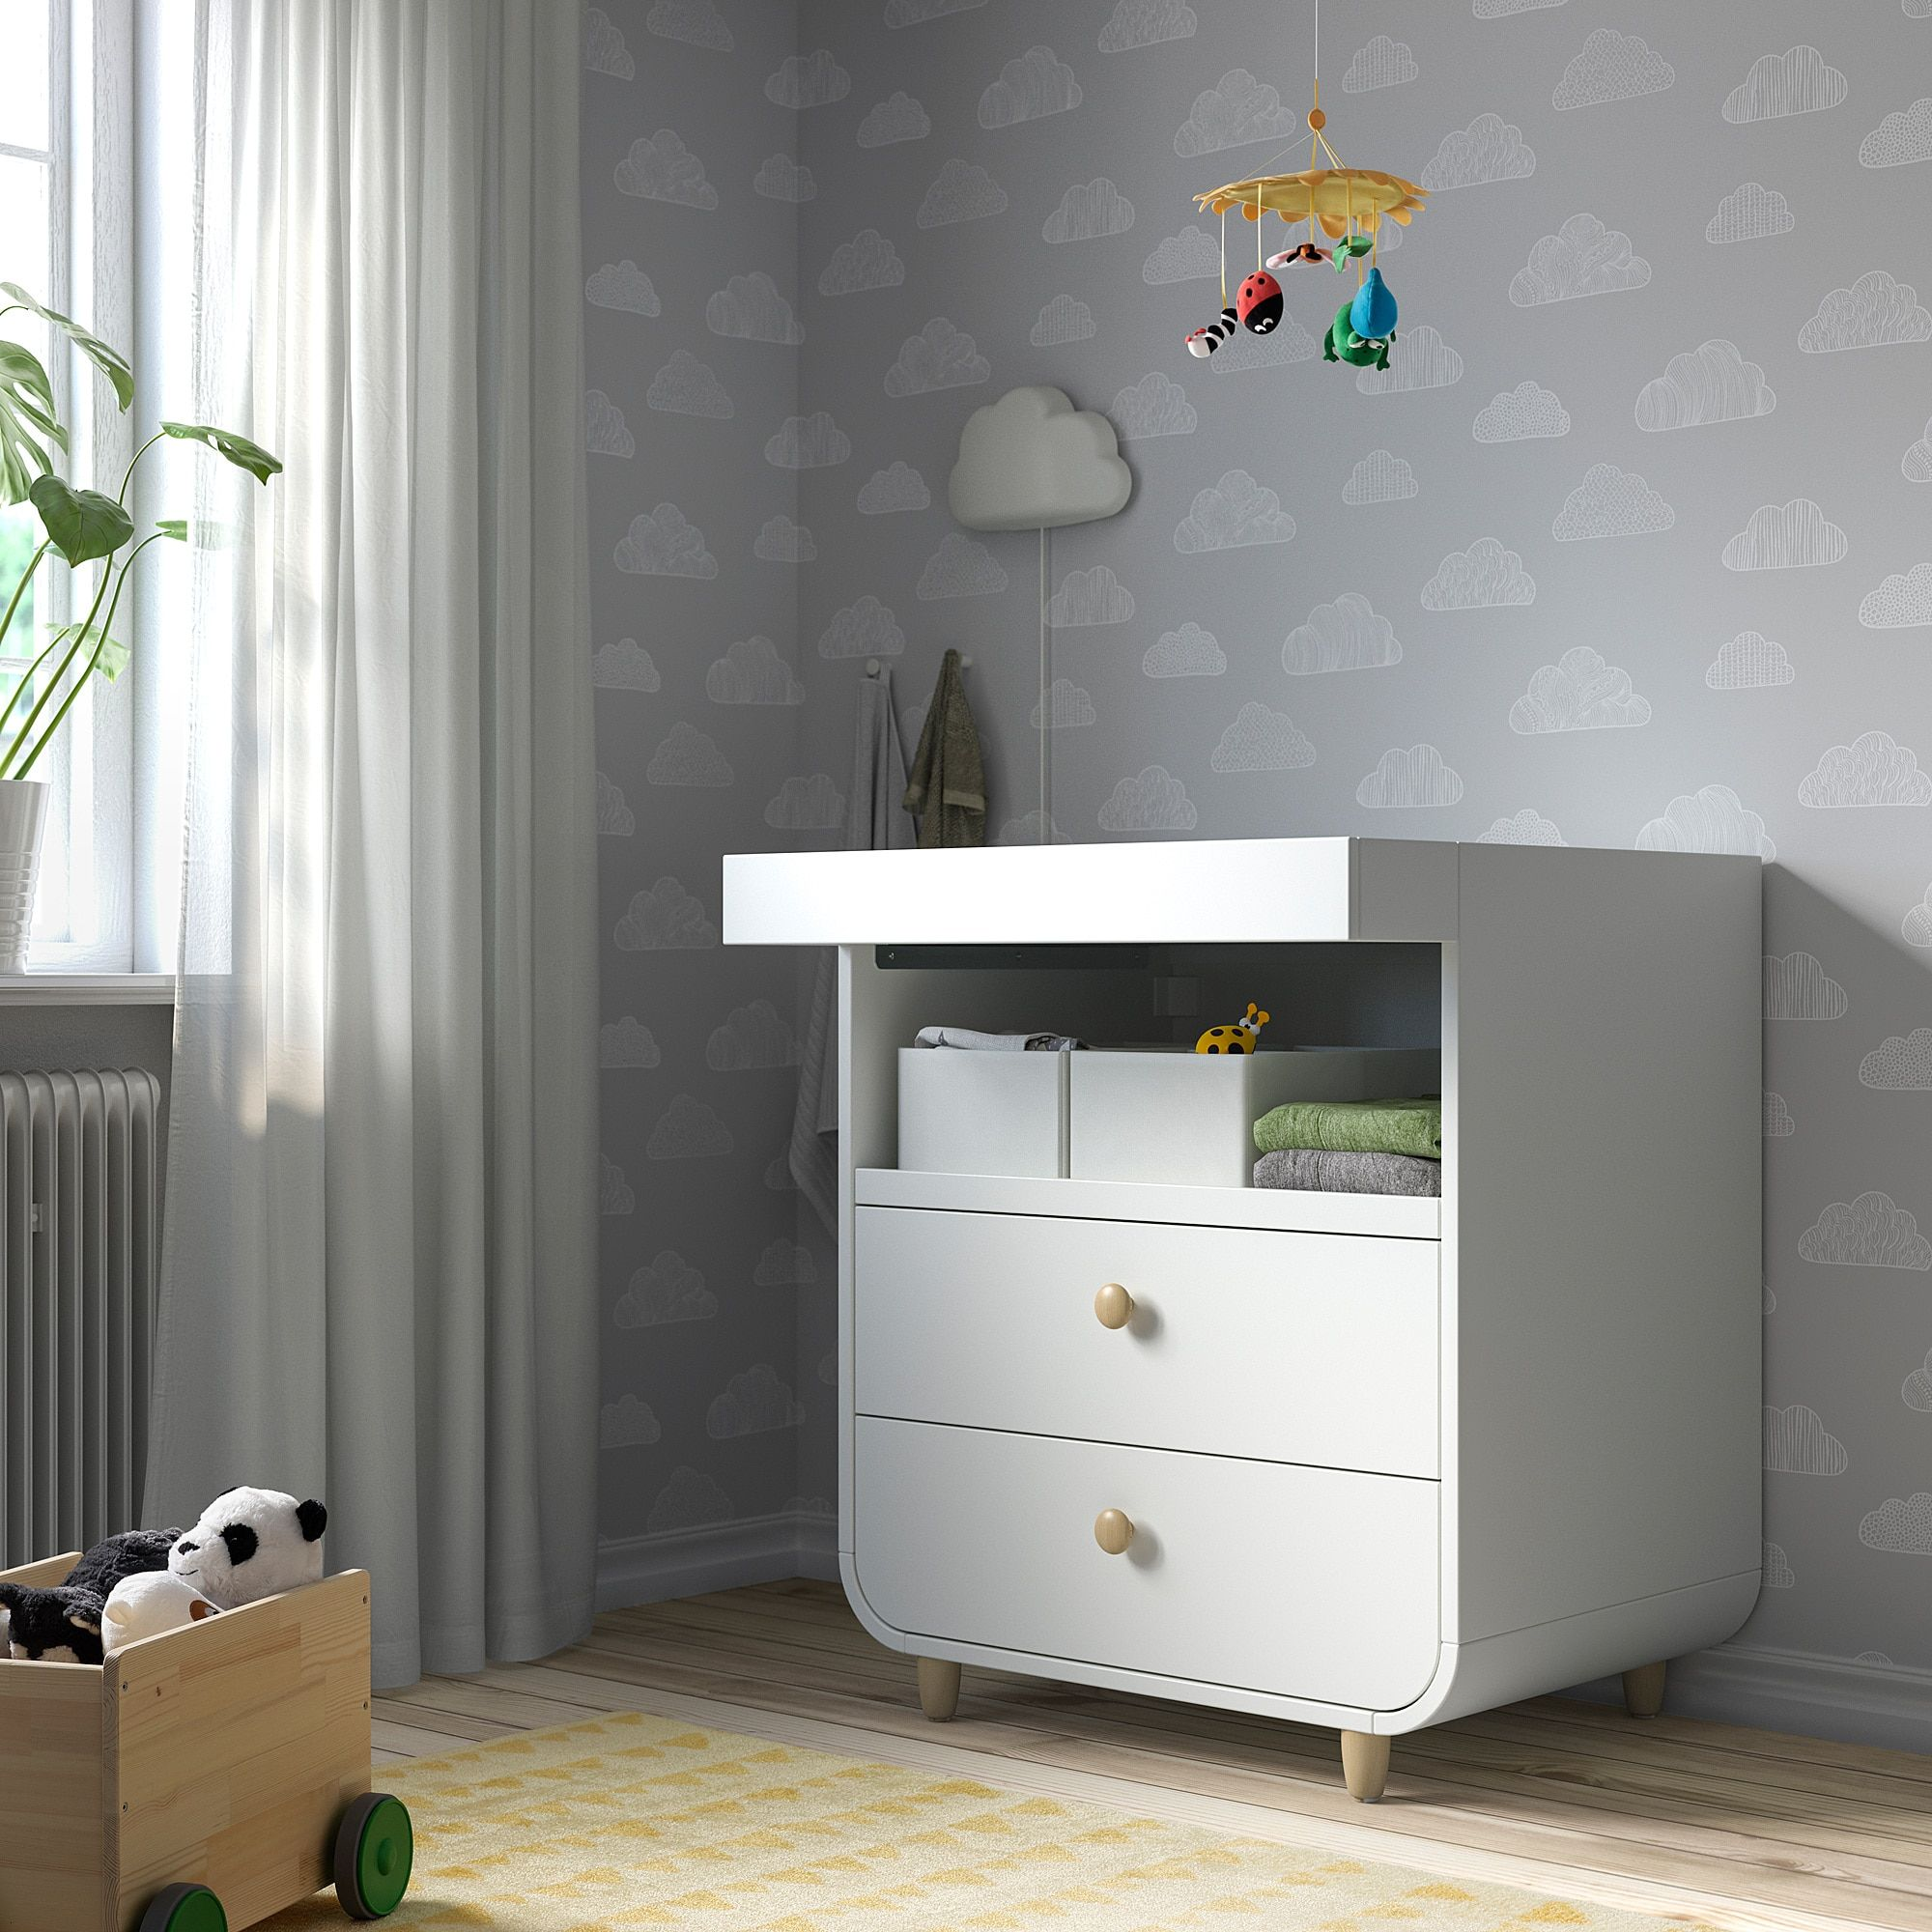 38+ Ikea baby changing cabinet trends